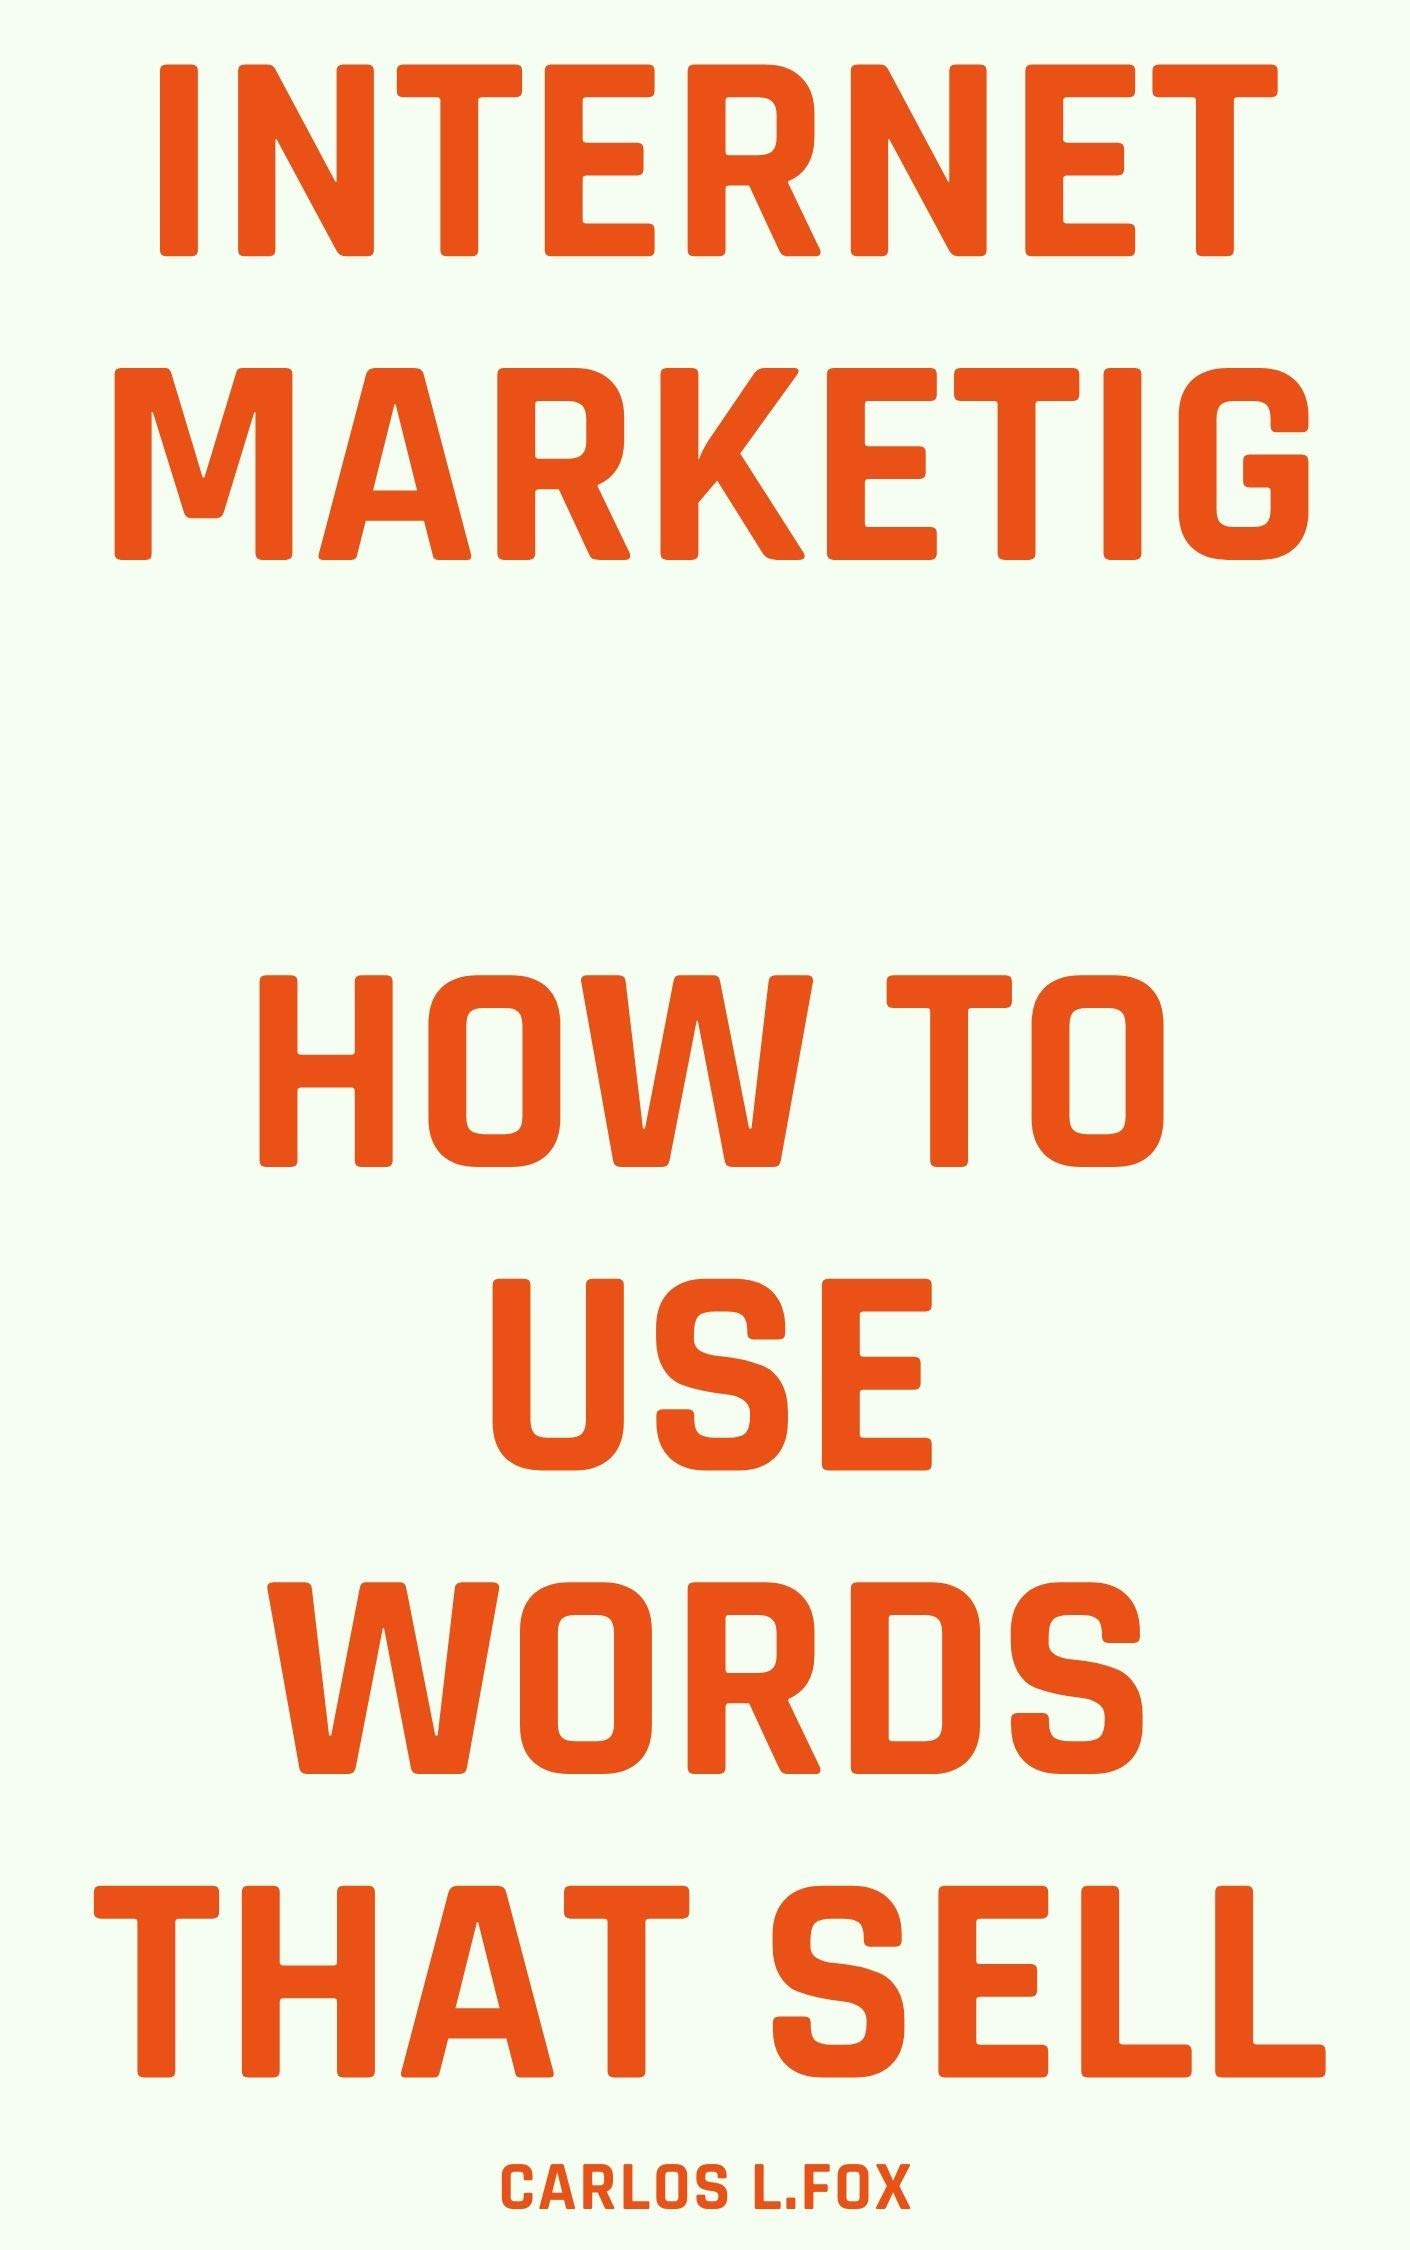 INTERNET MARKETING: How to use words that sell